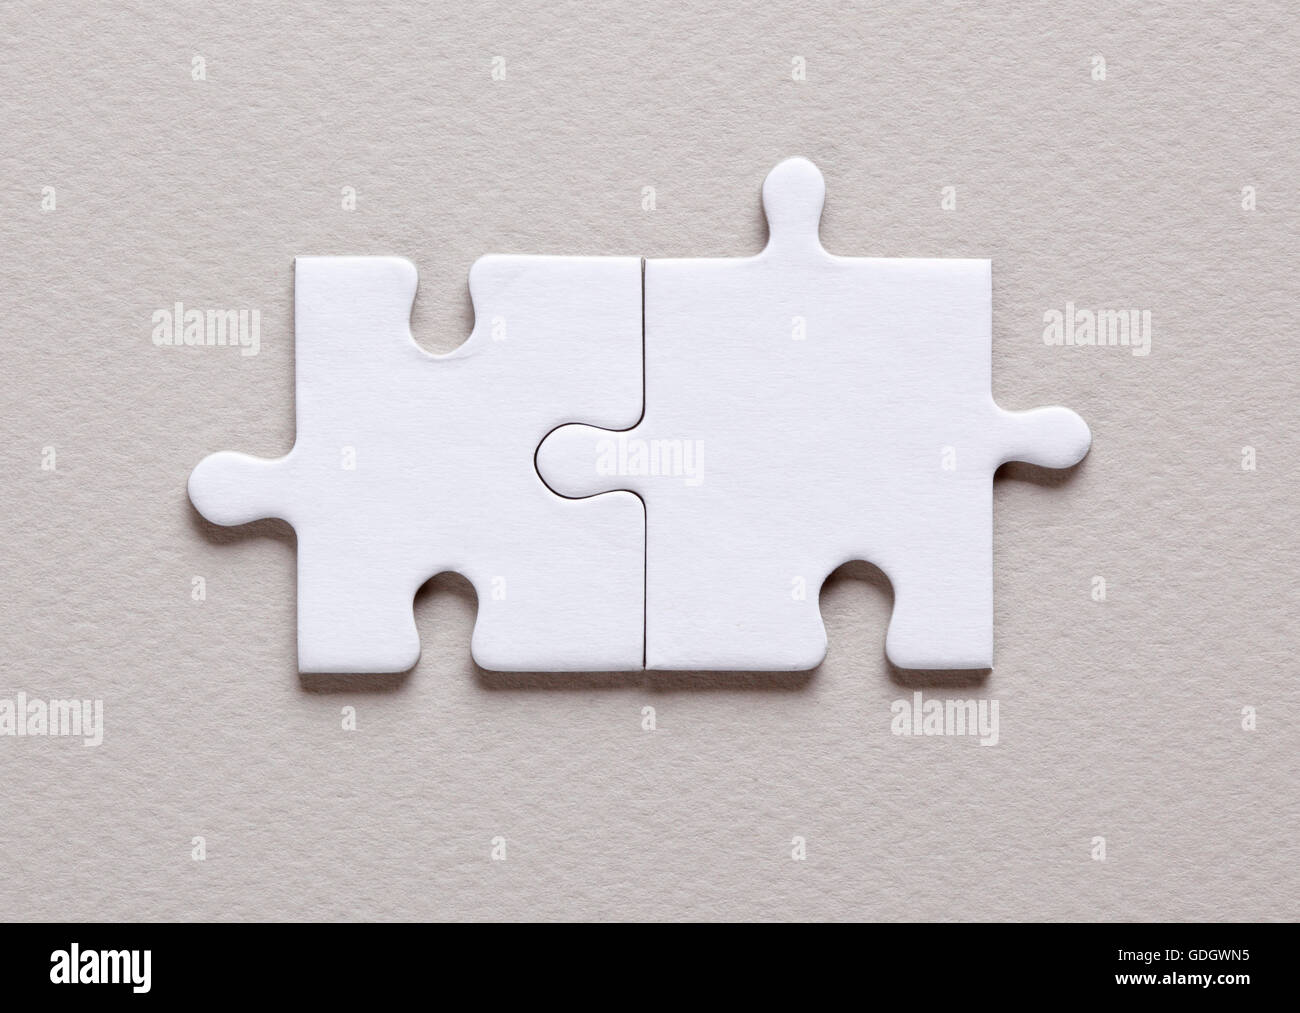 Blank Jigsaw Puzzle Pieces Stock Photos & Blank Jigsaw Puzzle Pieces ...